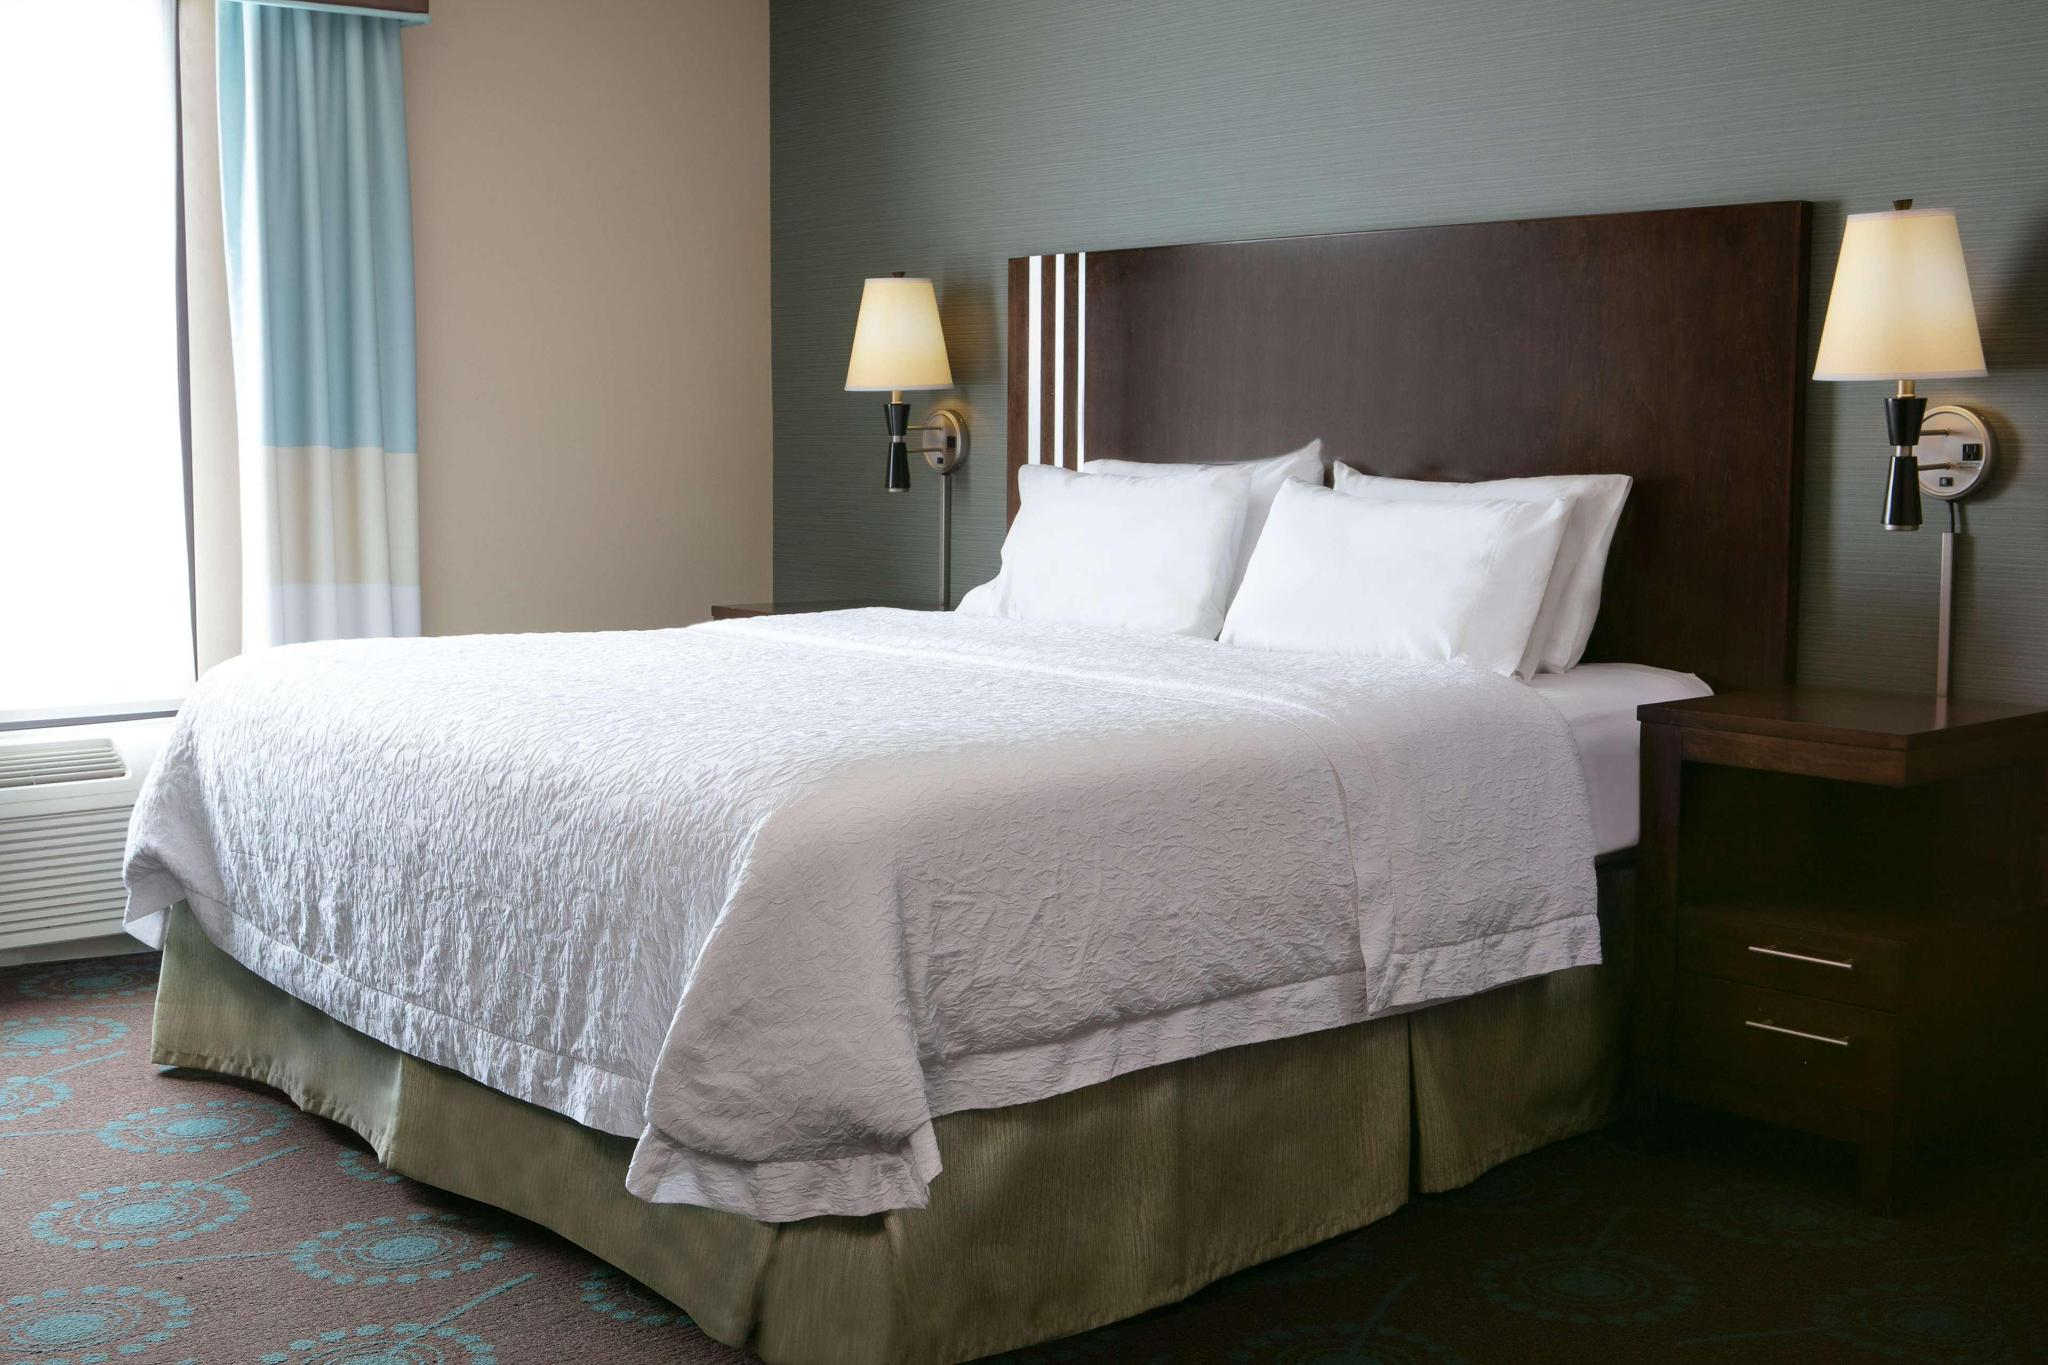 Studio king size bed